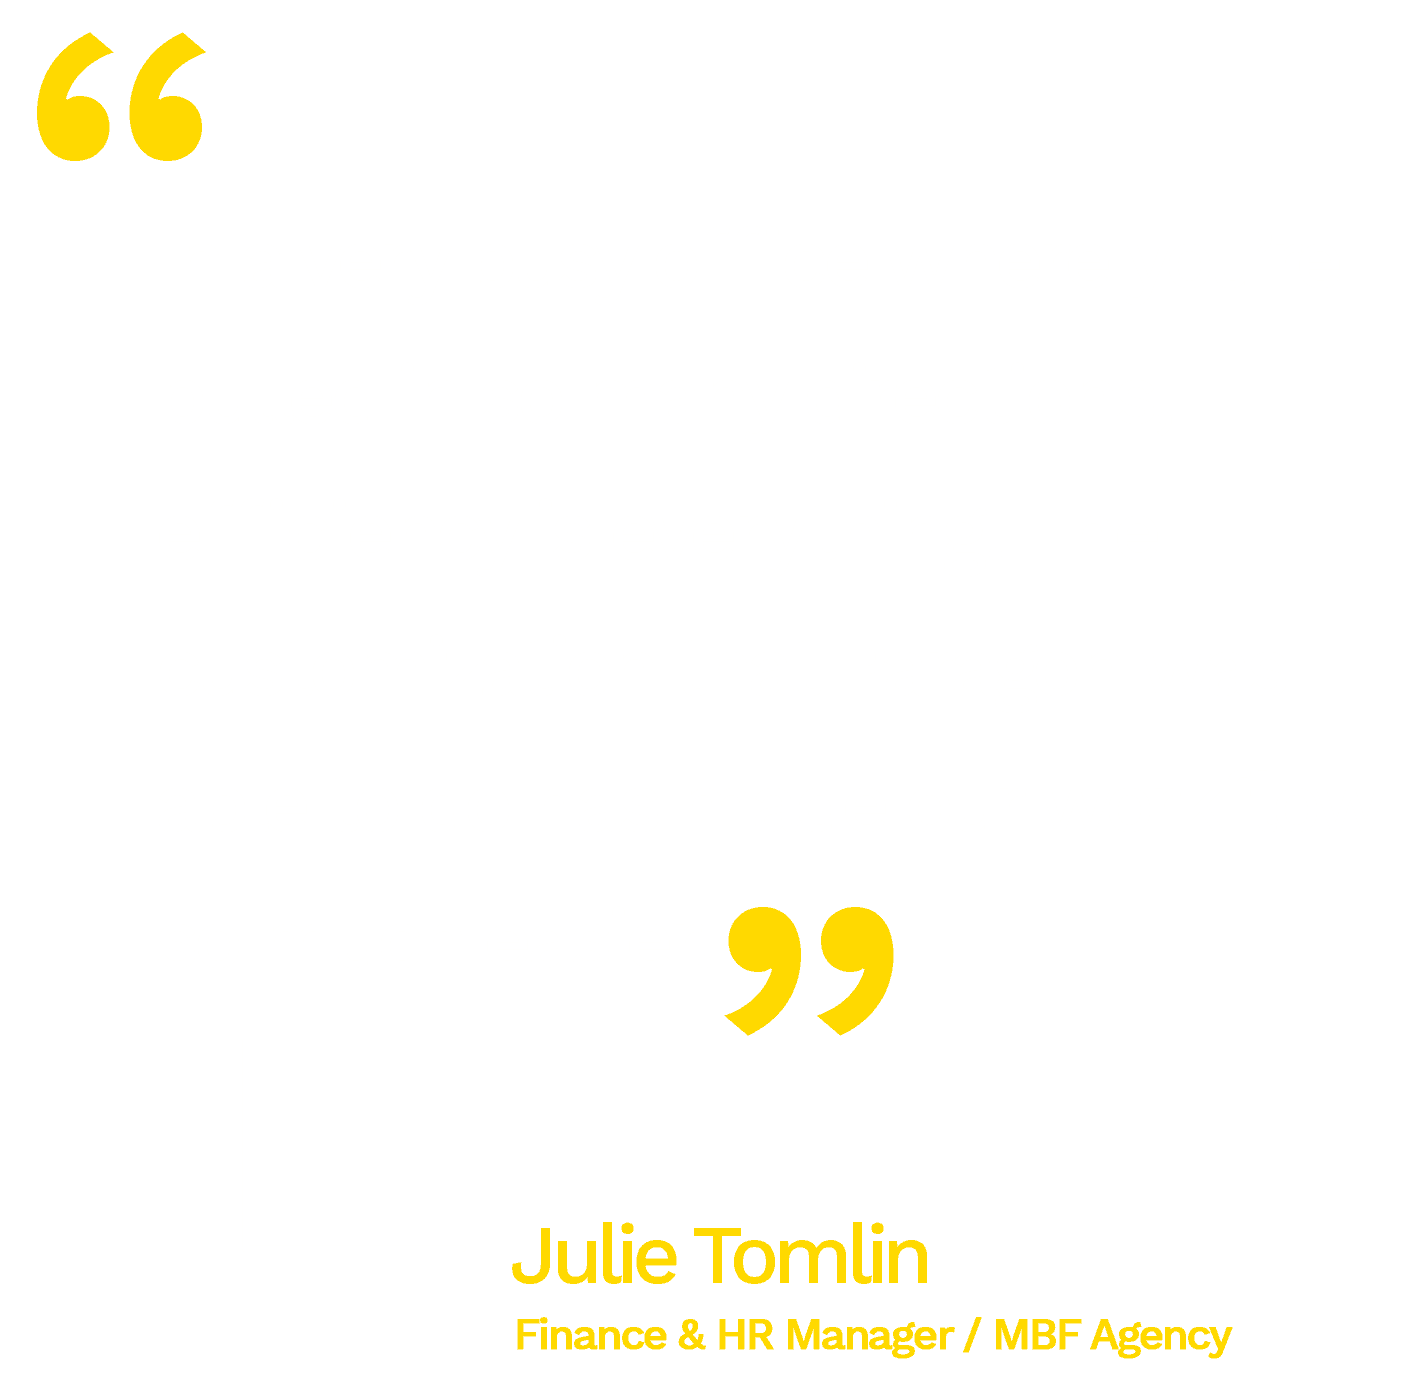 """In a very busy office where you're pulled in so many directions, efficiency is everything. The customization that Paragon was able to do has made our workflow so much easier."" - Julie Tomlin, MBF Agency"